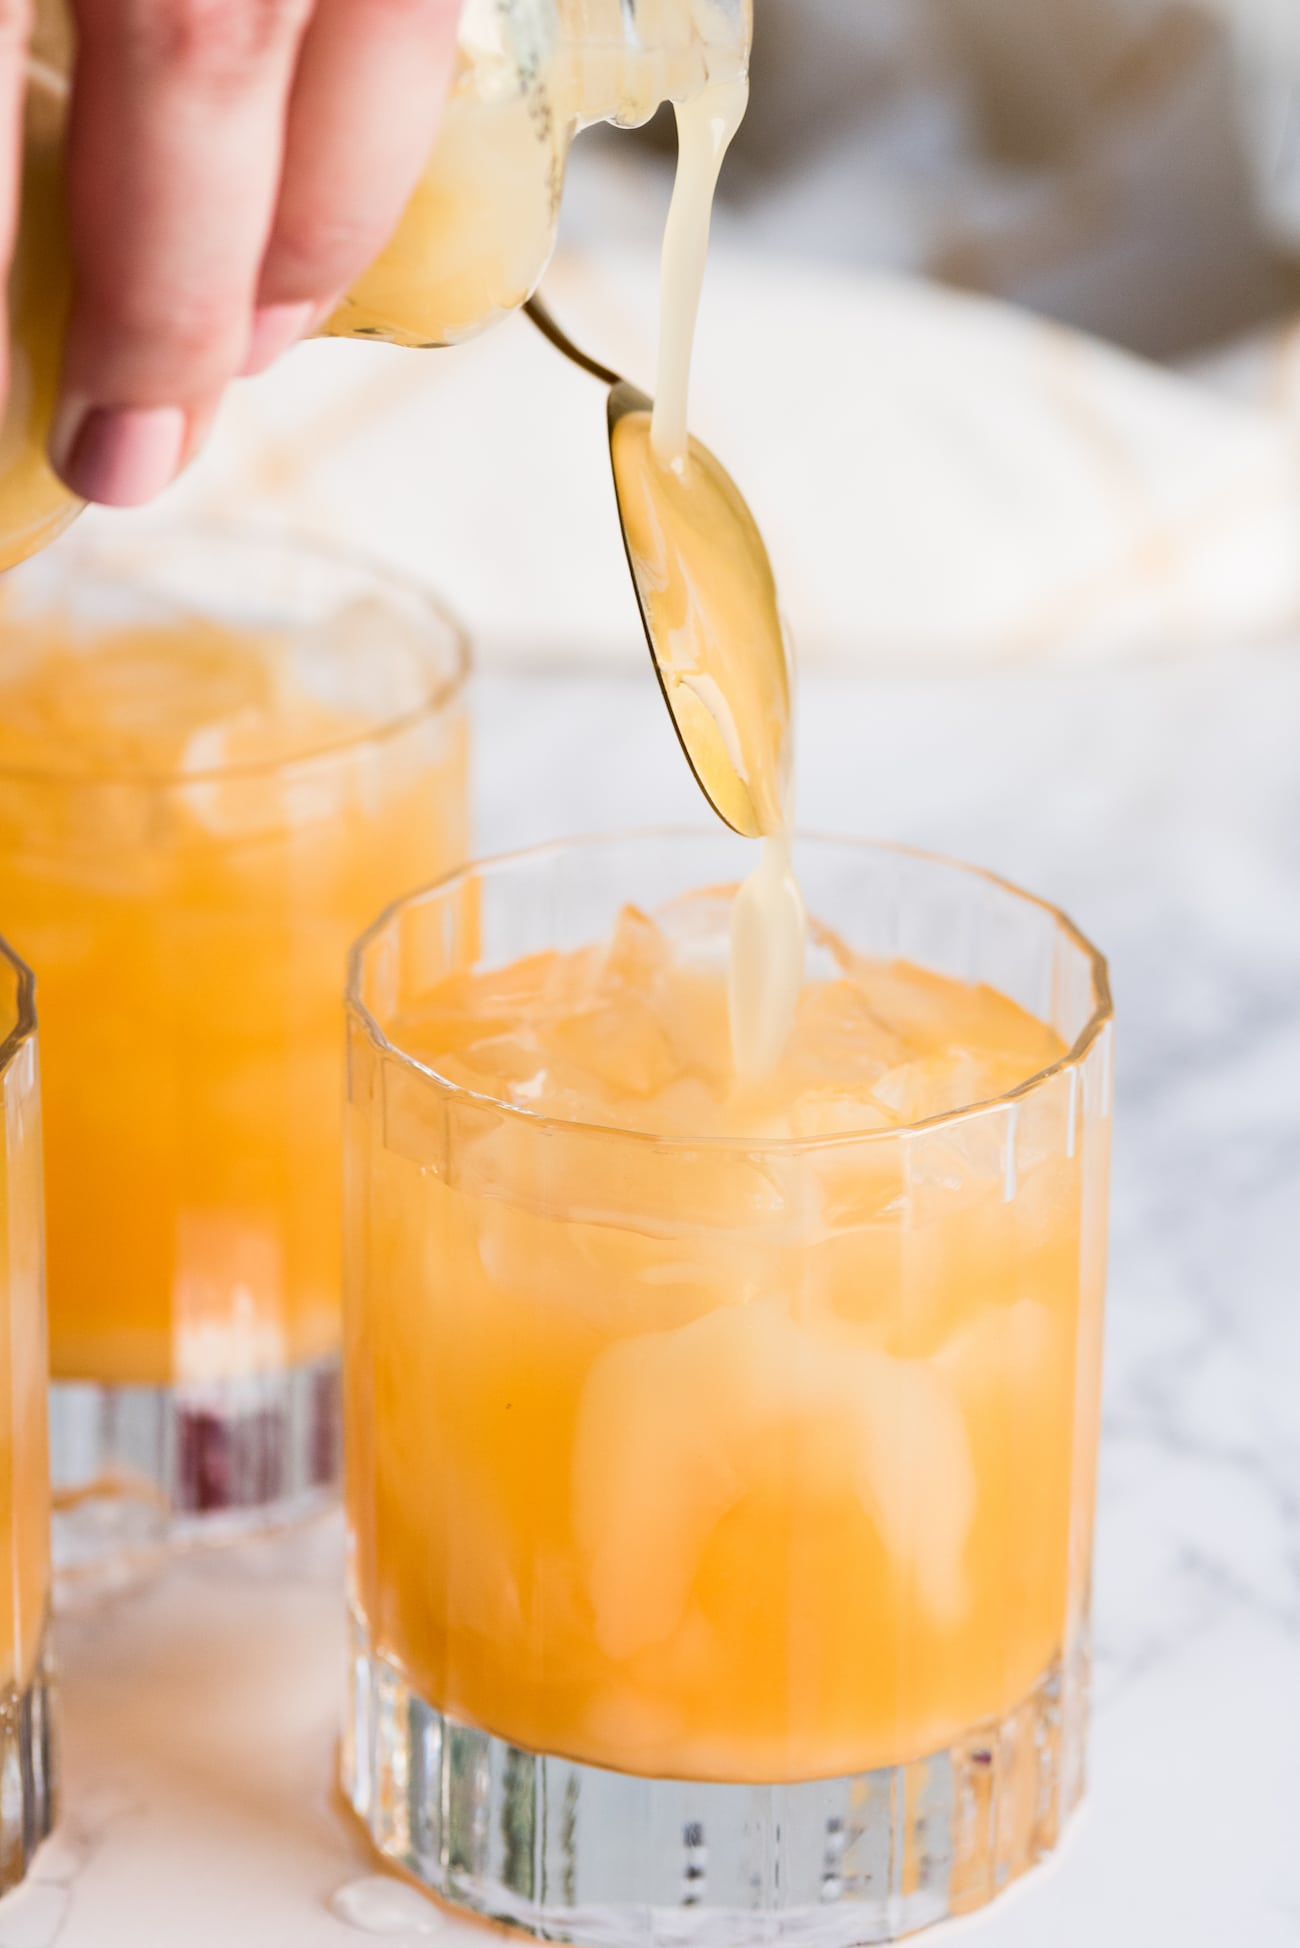 Mango Sunrise Piña Coladas from entertaining blog @cydconverse - Click through for entertaining tips, party ideas, recipes, cocktail recipes, party appetizers and more!